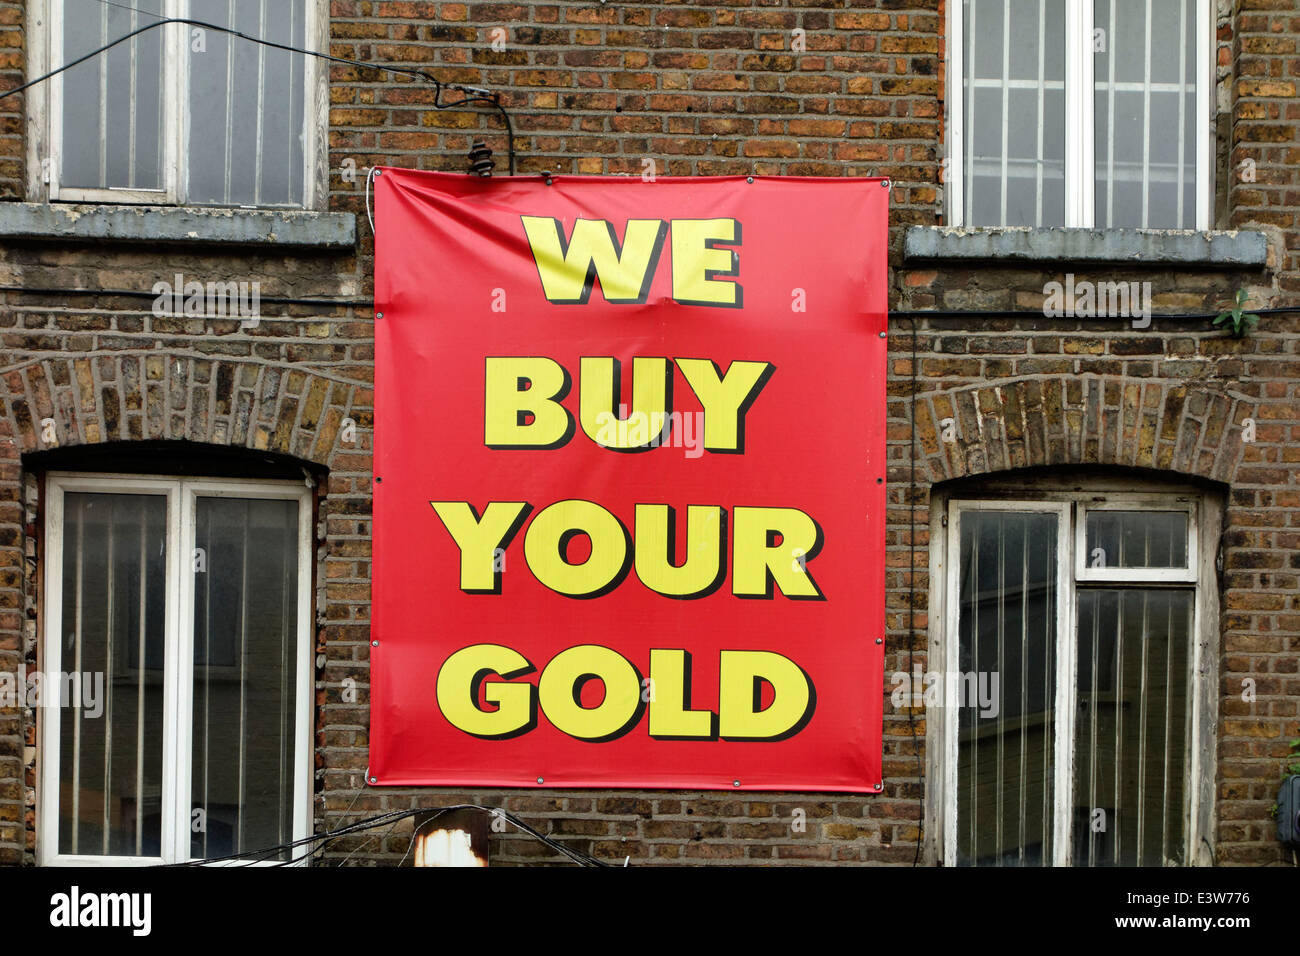 We buy your gold sign hanging on brick wall, Dublin, Republic of Ireland, Europe. - Stock Image